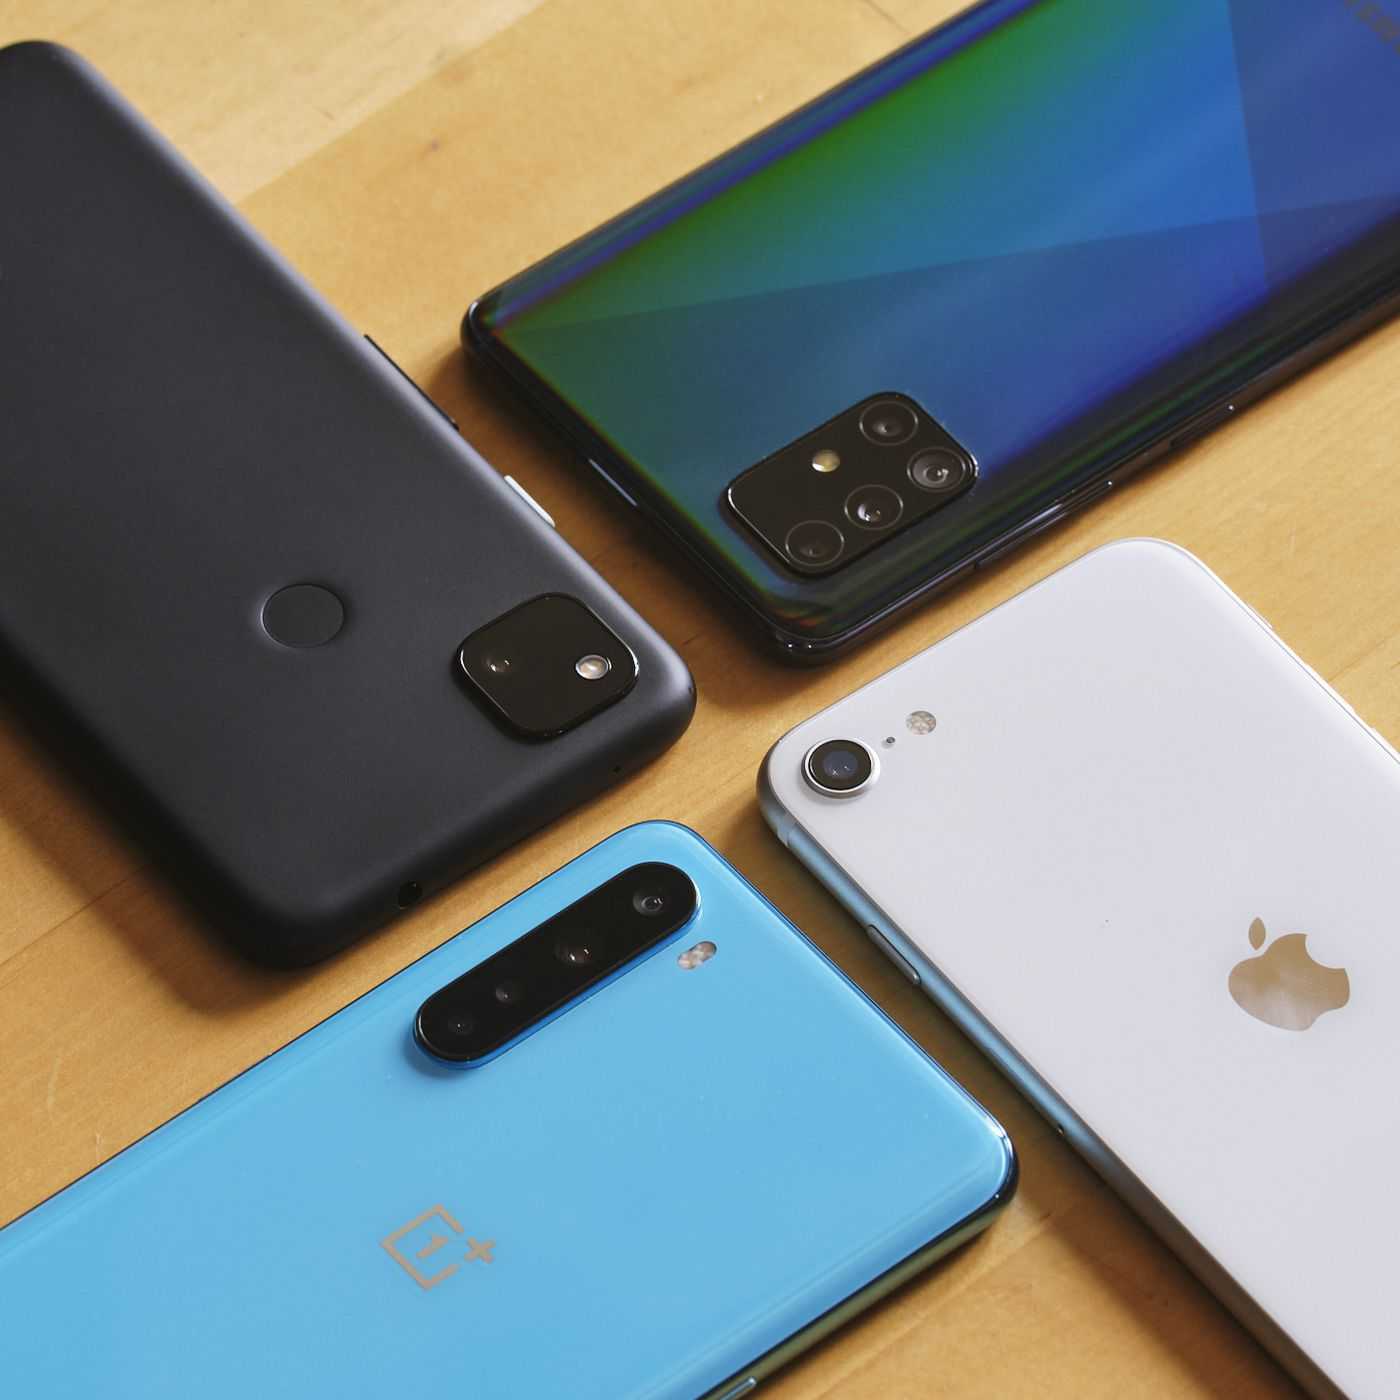 The Best Mobile Phone Accessories To Sell In 2021